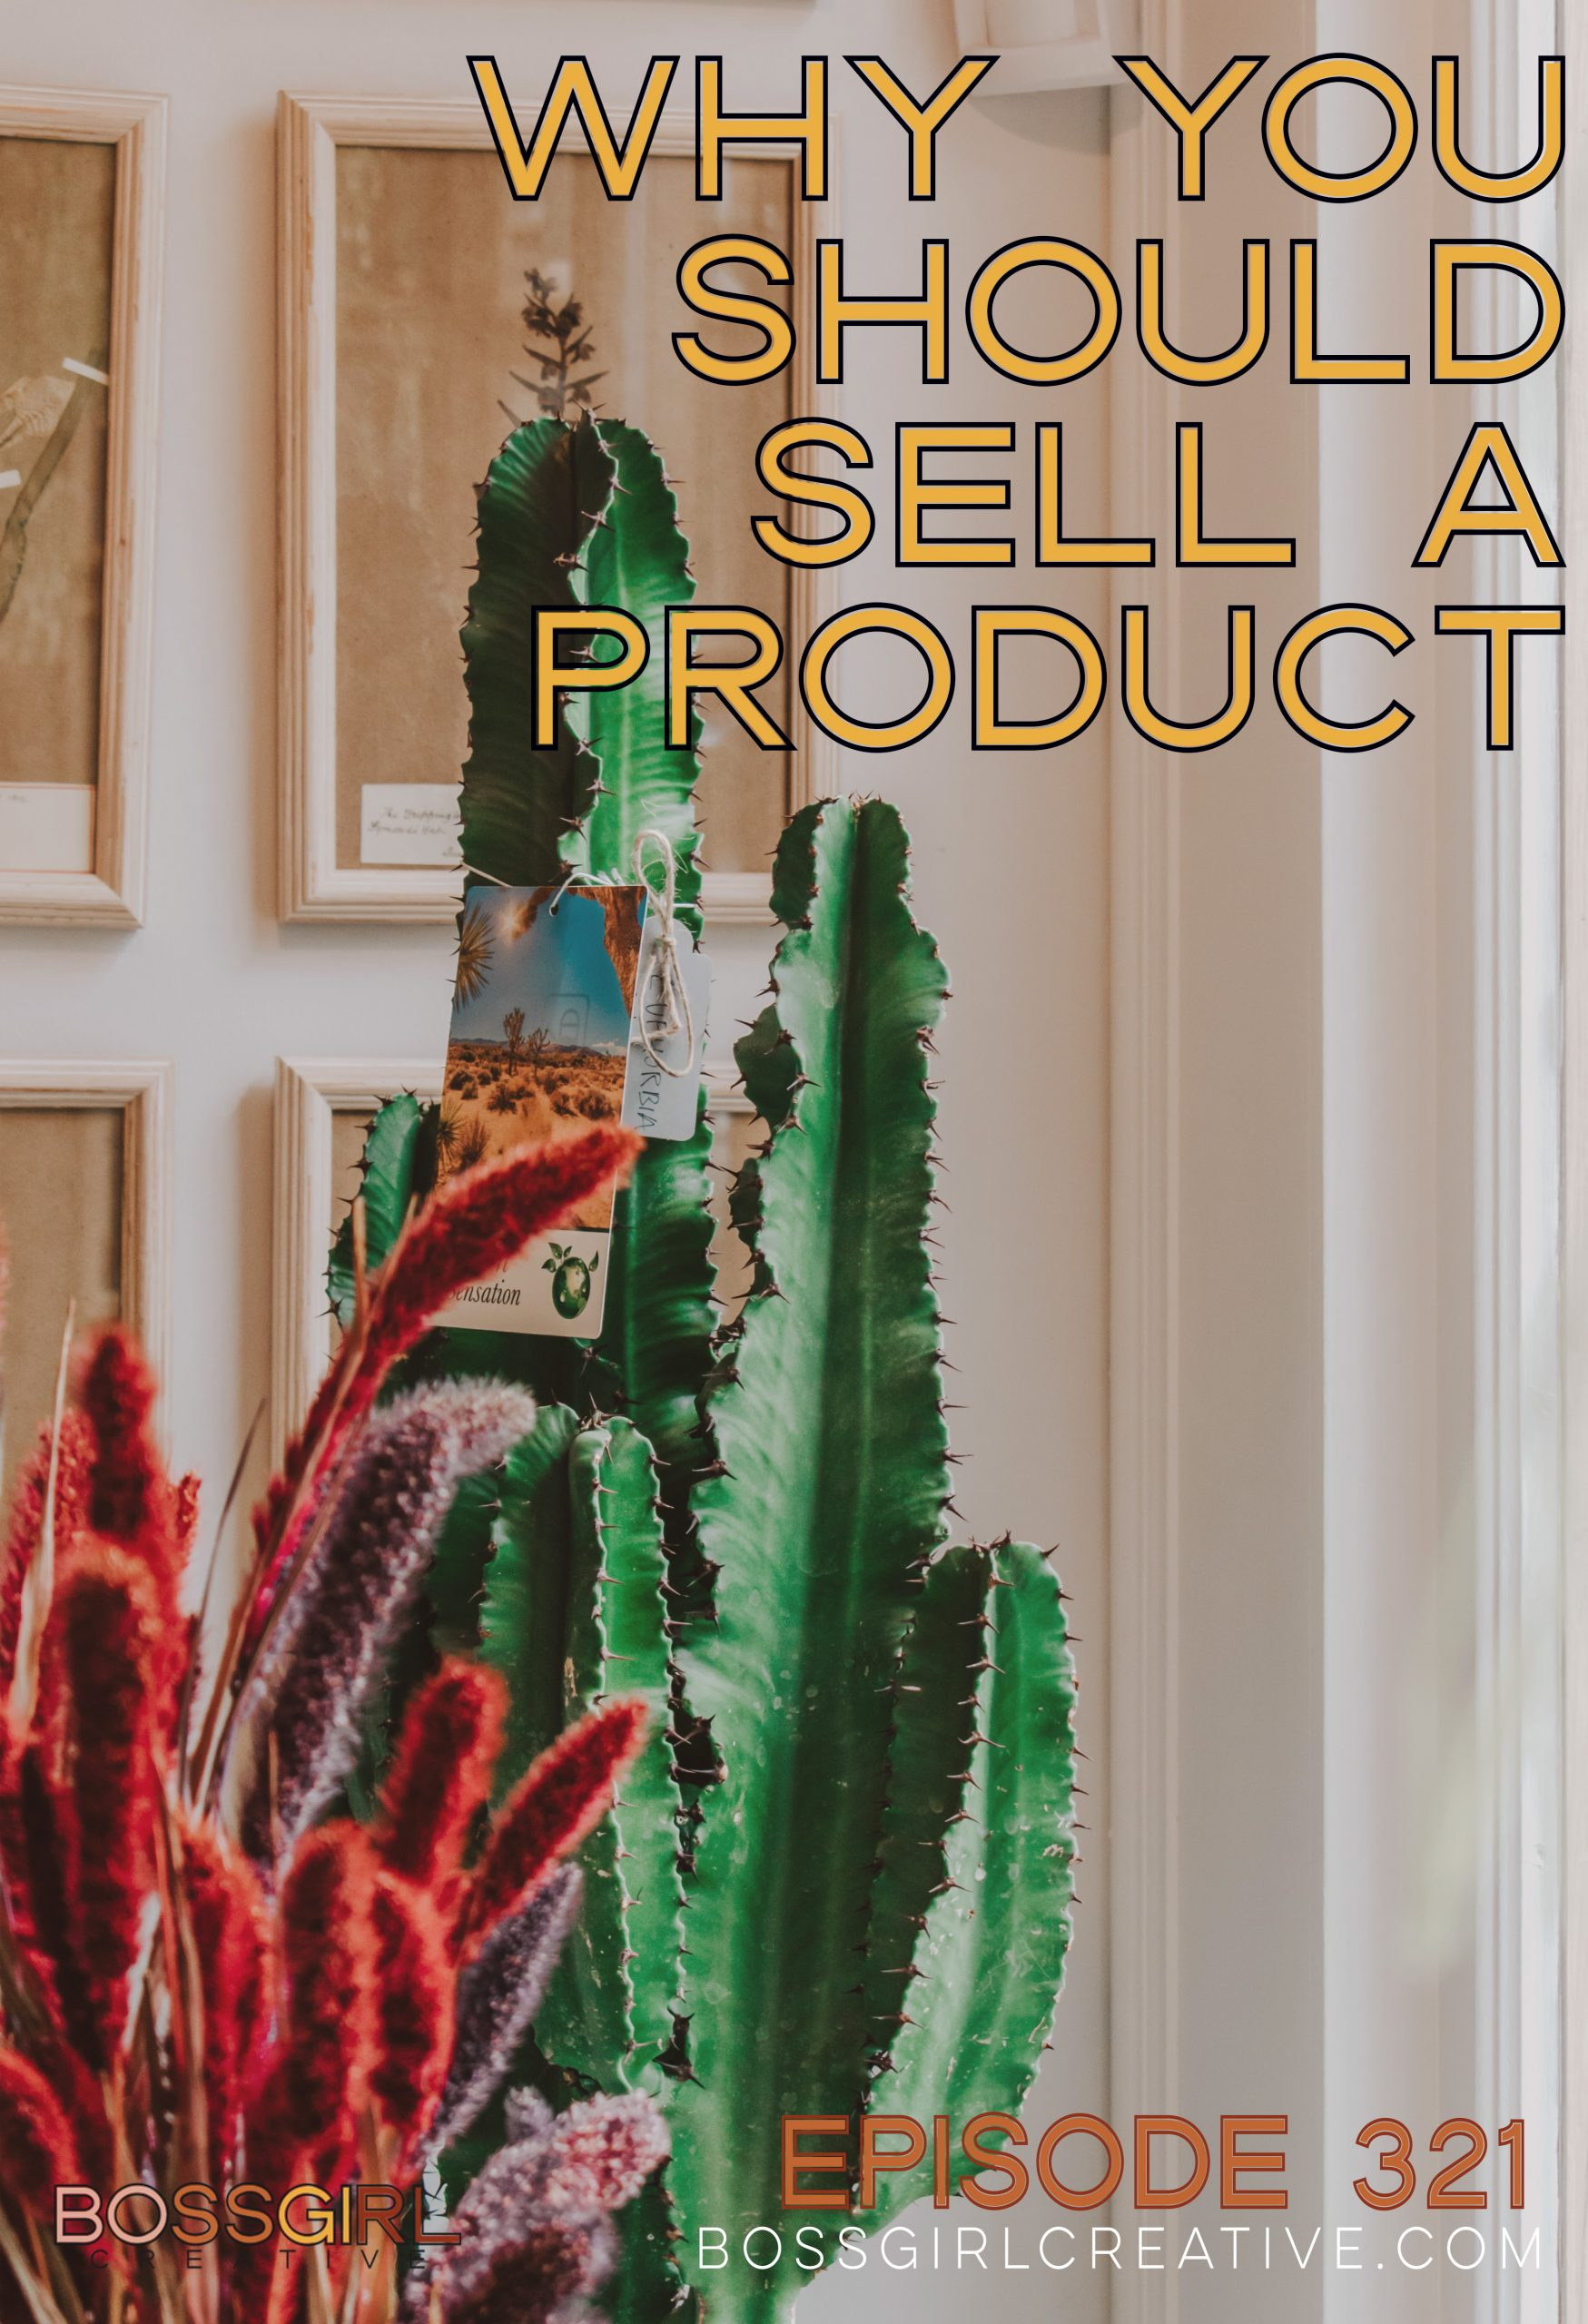 BGC Episode 321 - Why You Should Sell a Product